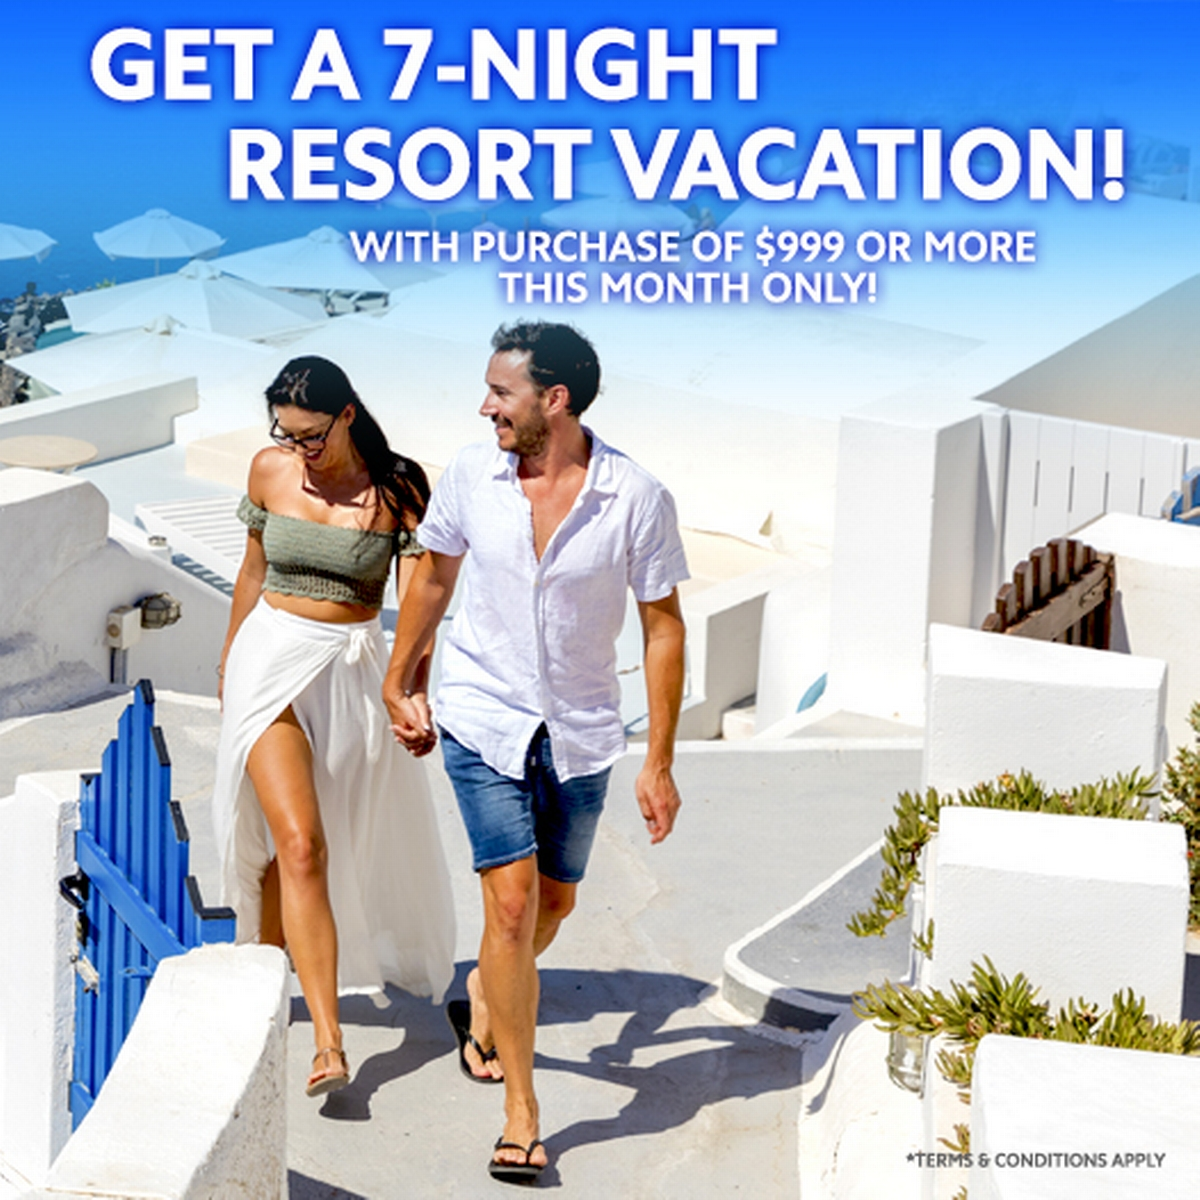 Get Your Vacation on - For Free!